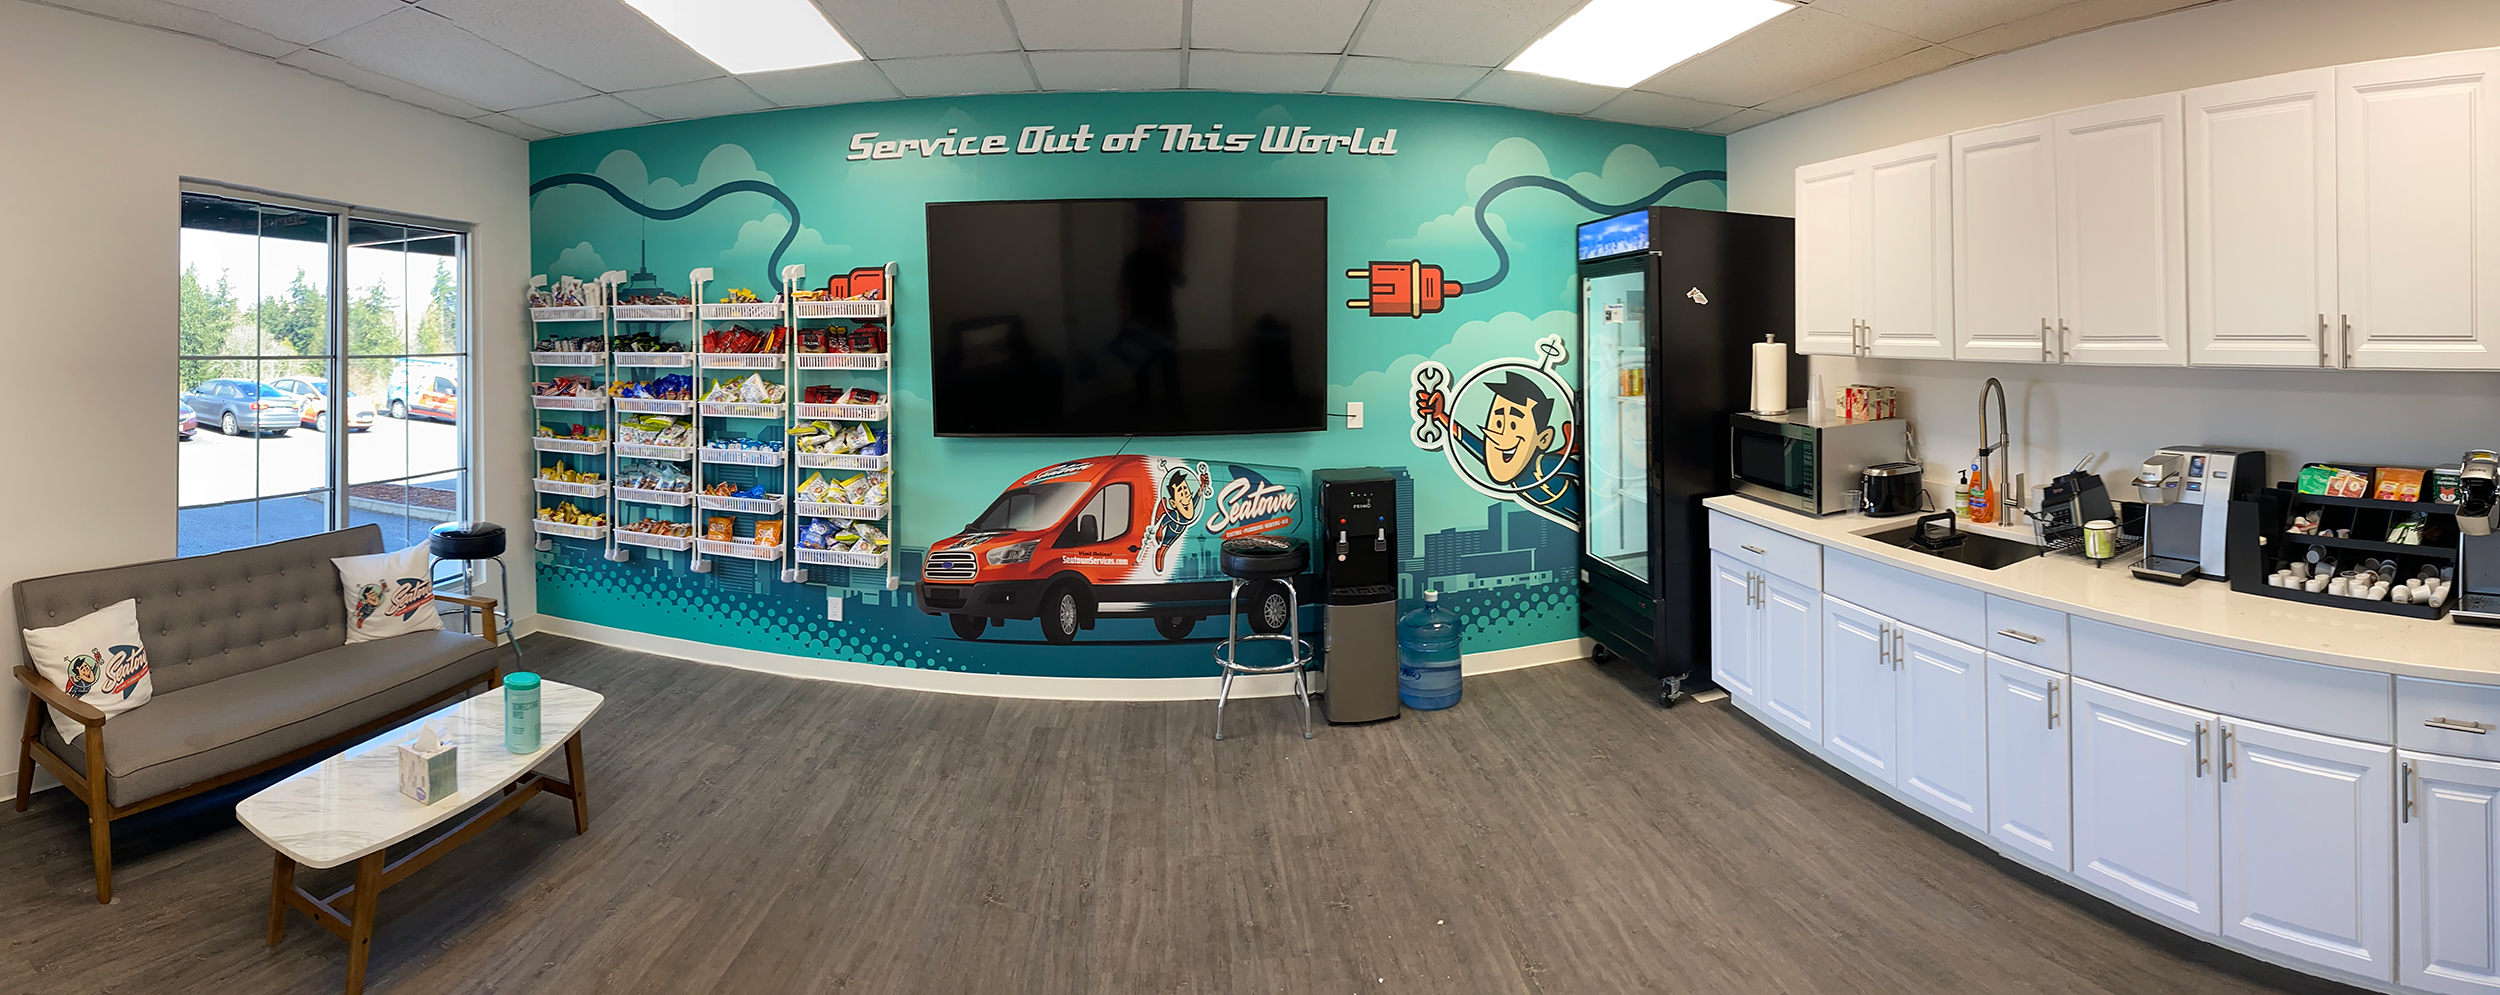 """Graphics used on the fleet trucks as well as images of trucks themselves bring outside branding inside .Taglines such as Seatown's """"Service Out of This World"""" make good candidates for wall-wrap copy."""